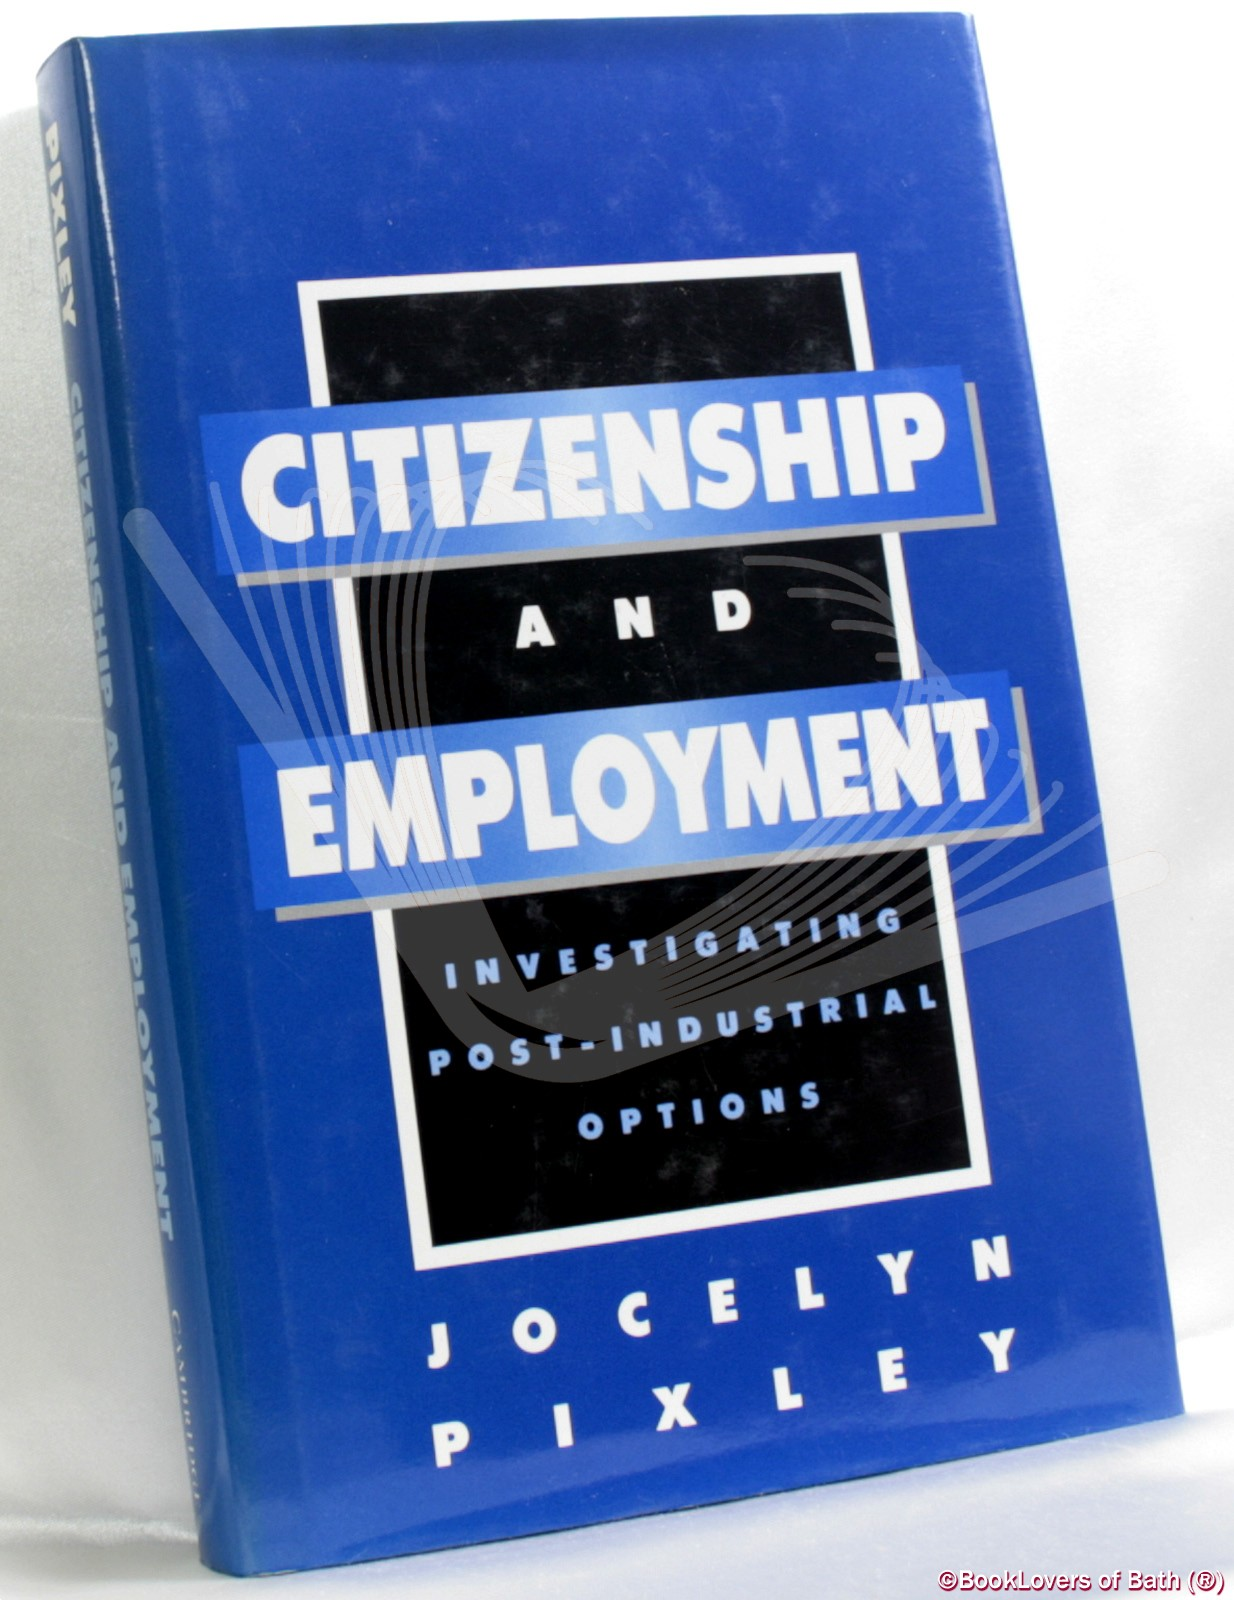 Citizenship and Employment: Investigating Post-industrial Options - Jocelyn Pixley